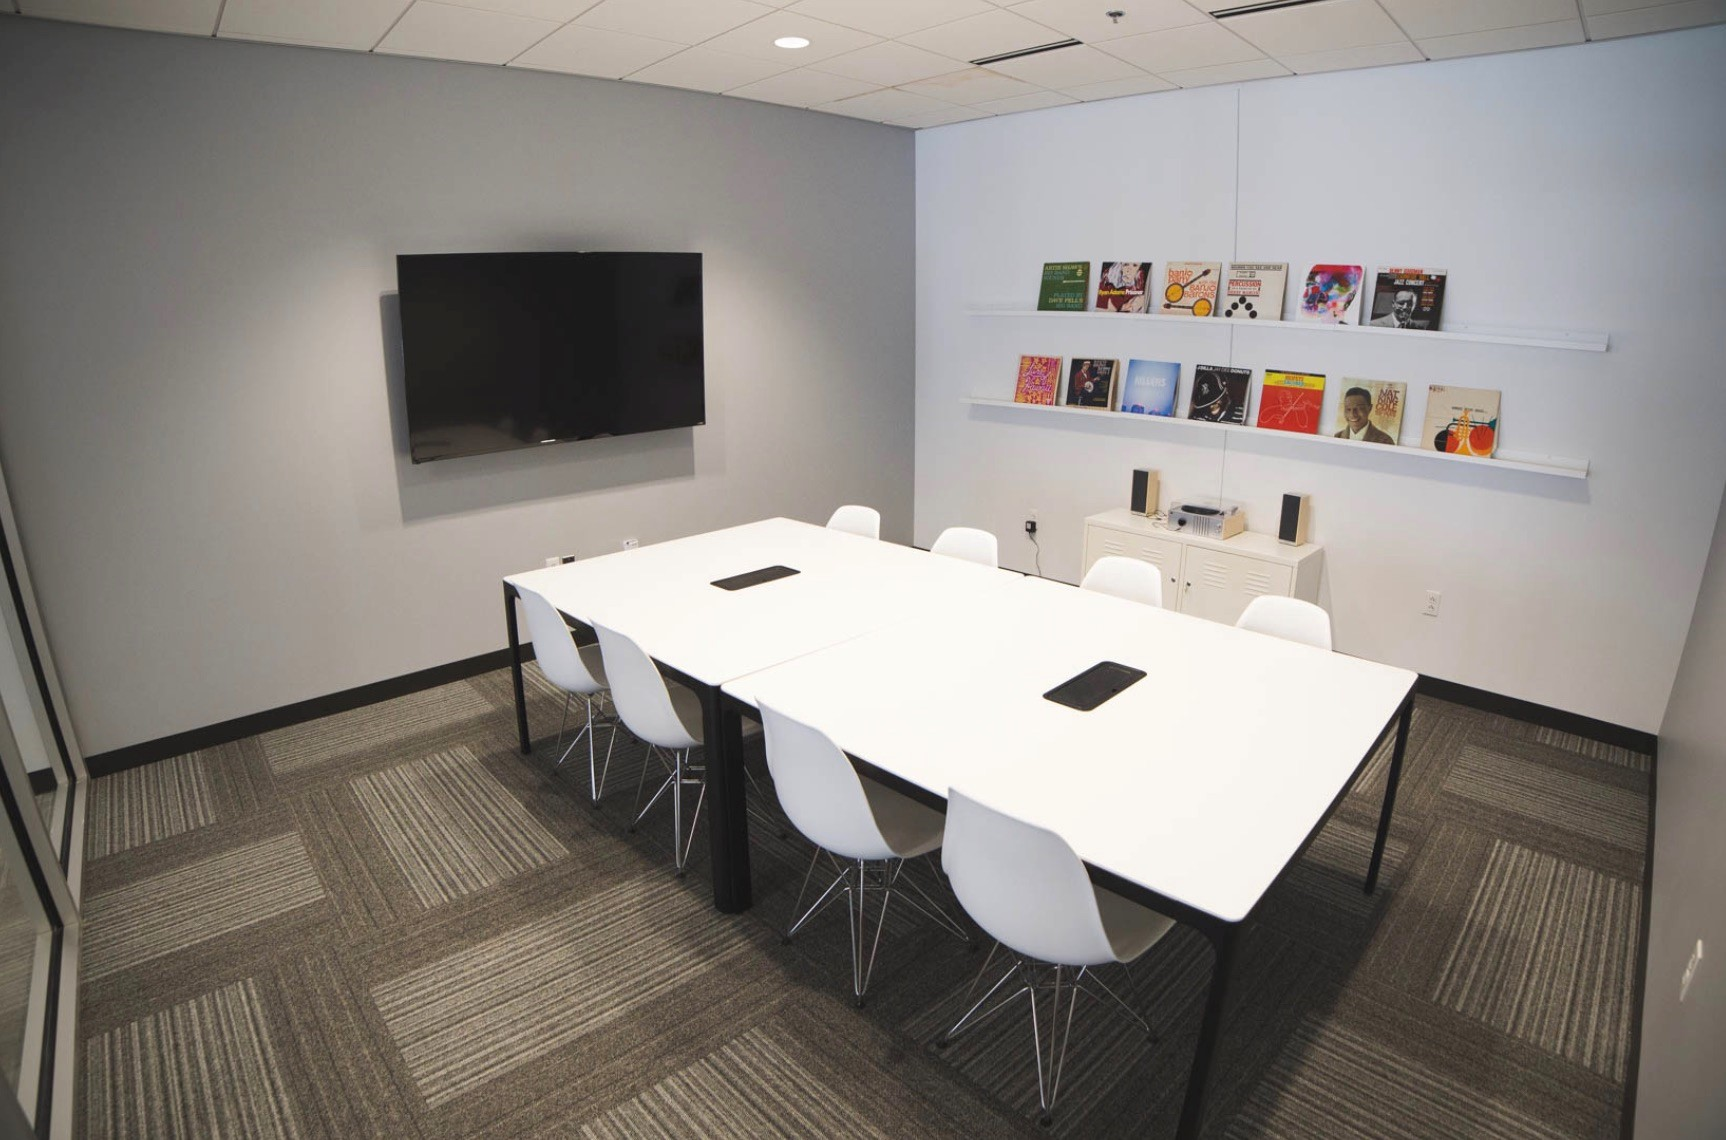 plexpod white table large screen medium size meeting room.jpg